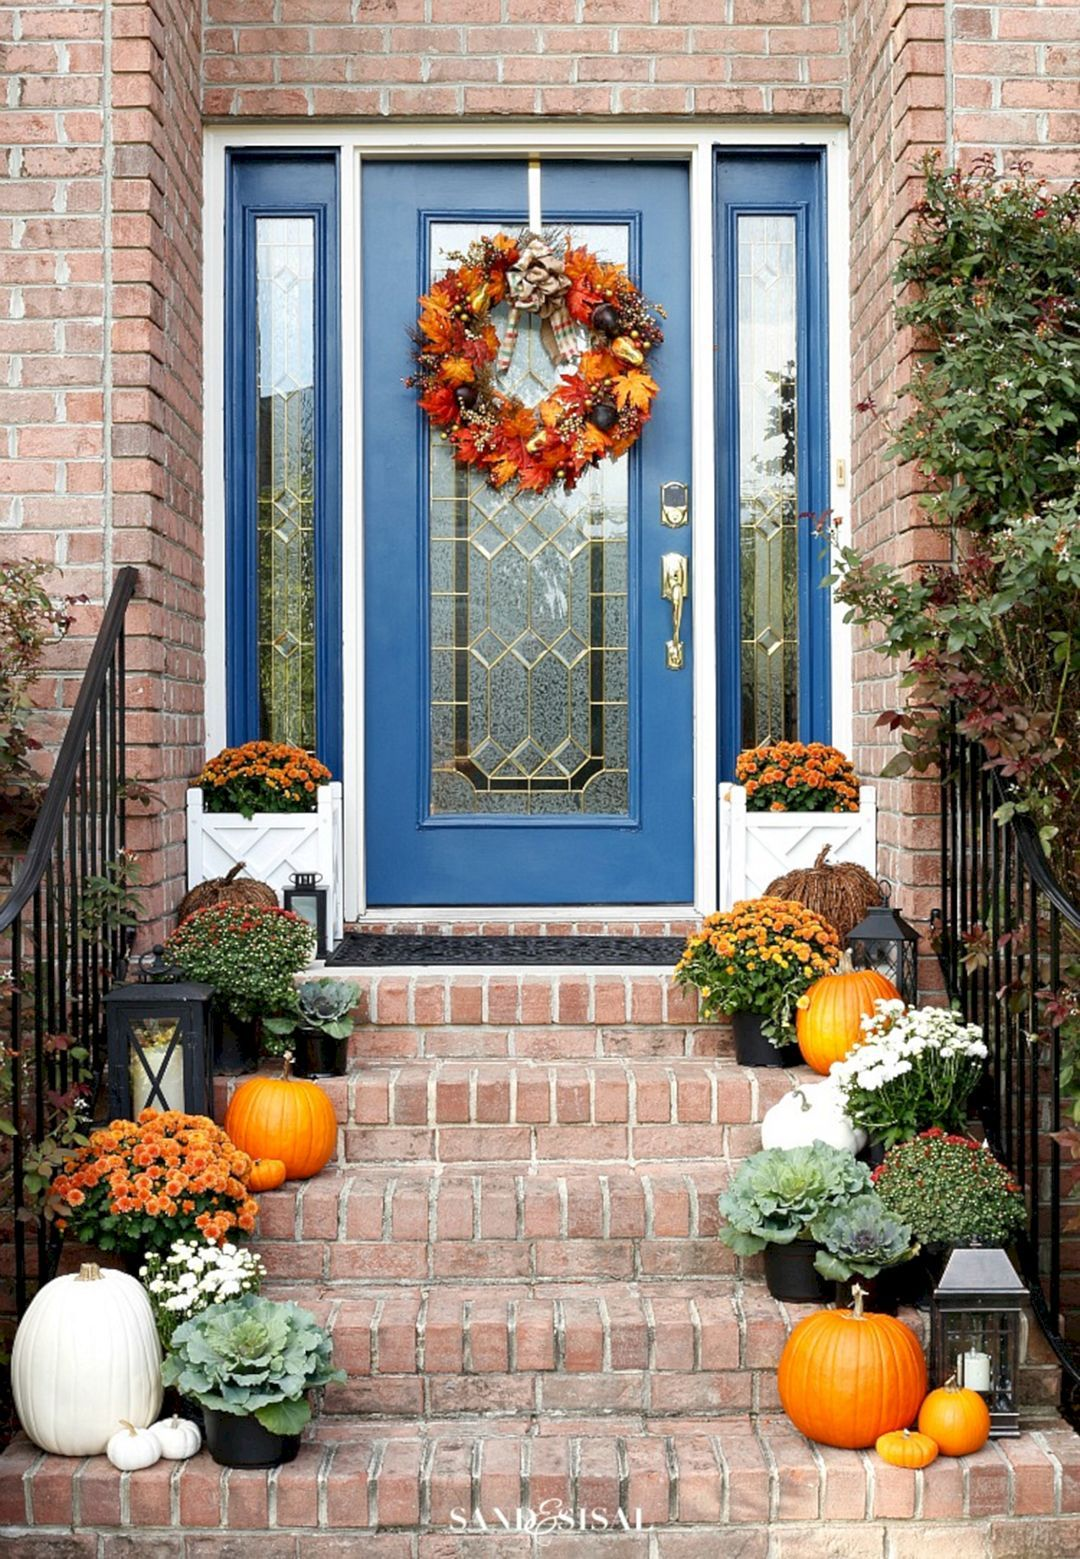 Awesome 25 Gorgeous Fall Decorating Ideas Small Front Porch Https Decoredo Com 21245 25 Gorgeous Fall Fall Decorations Porch Halloween Home Decor Fall Decor